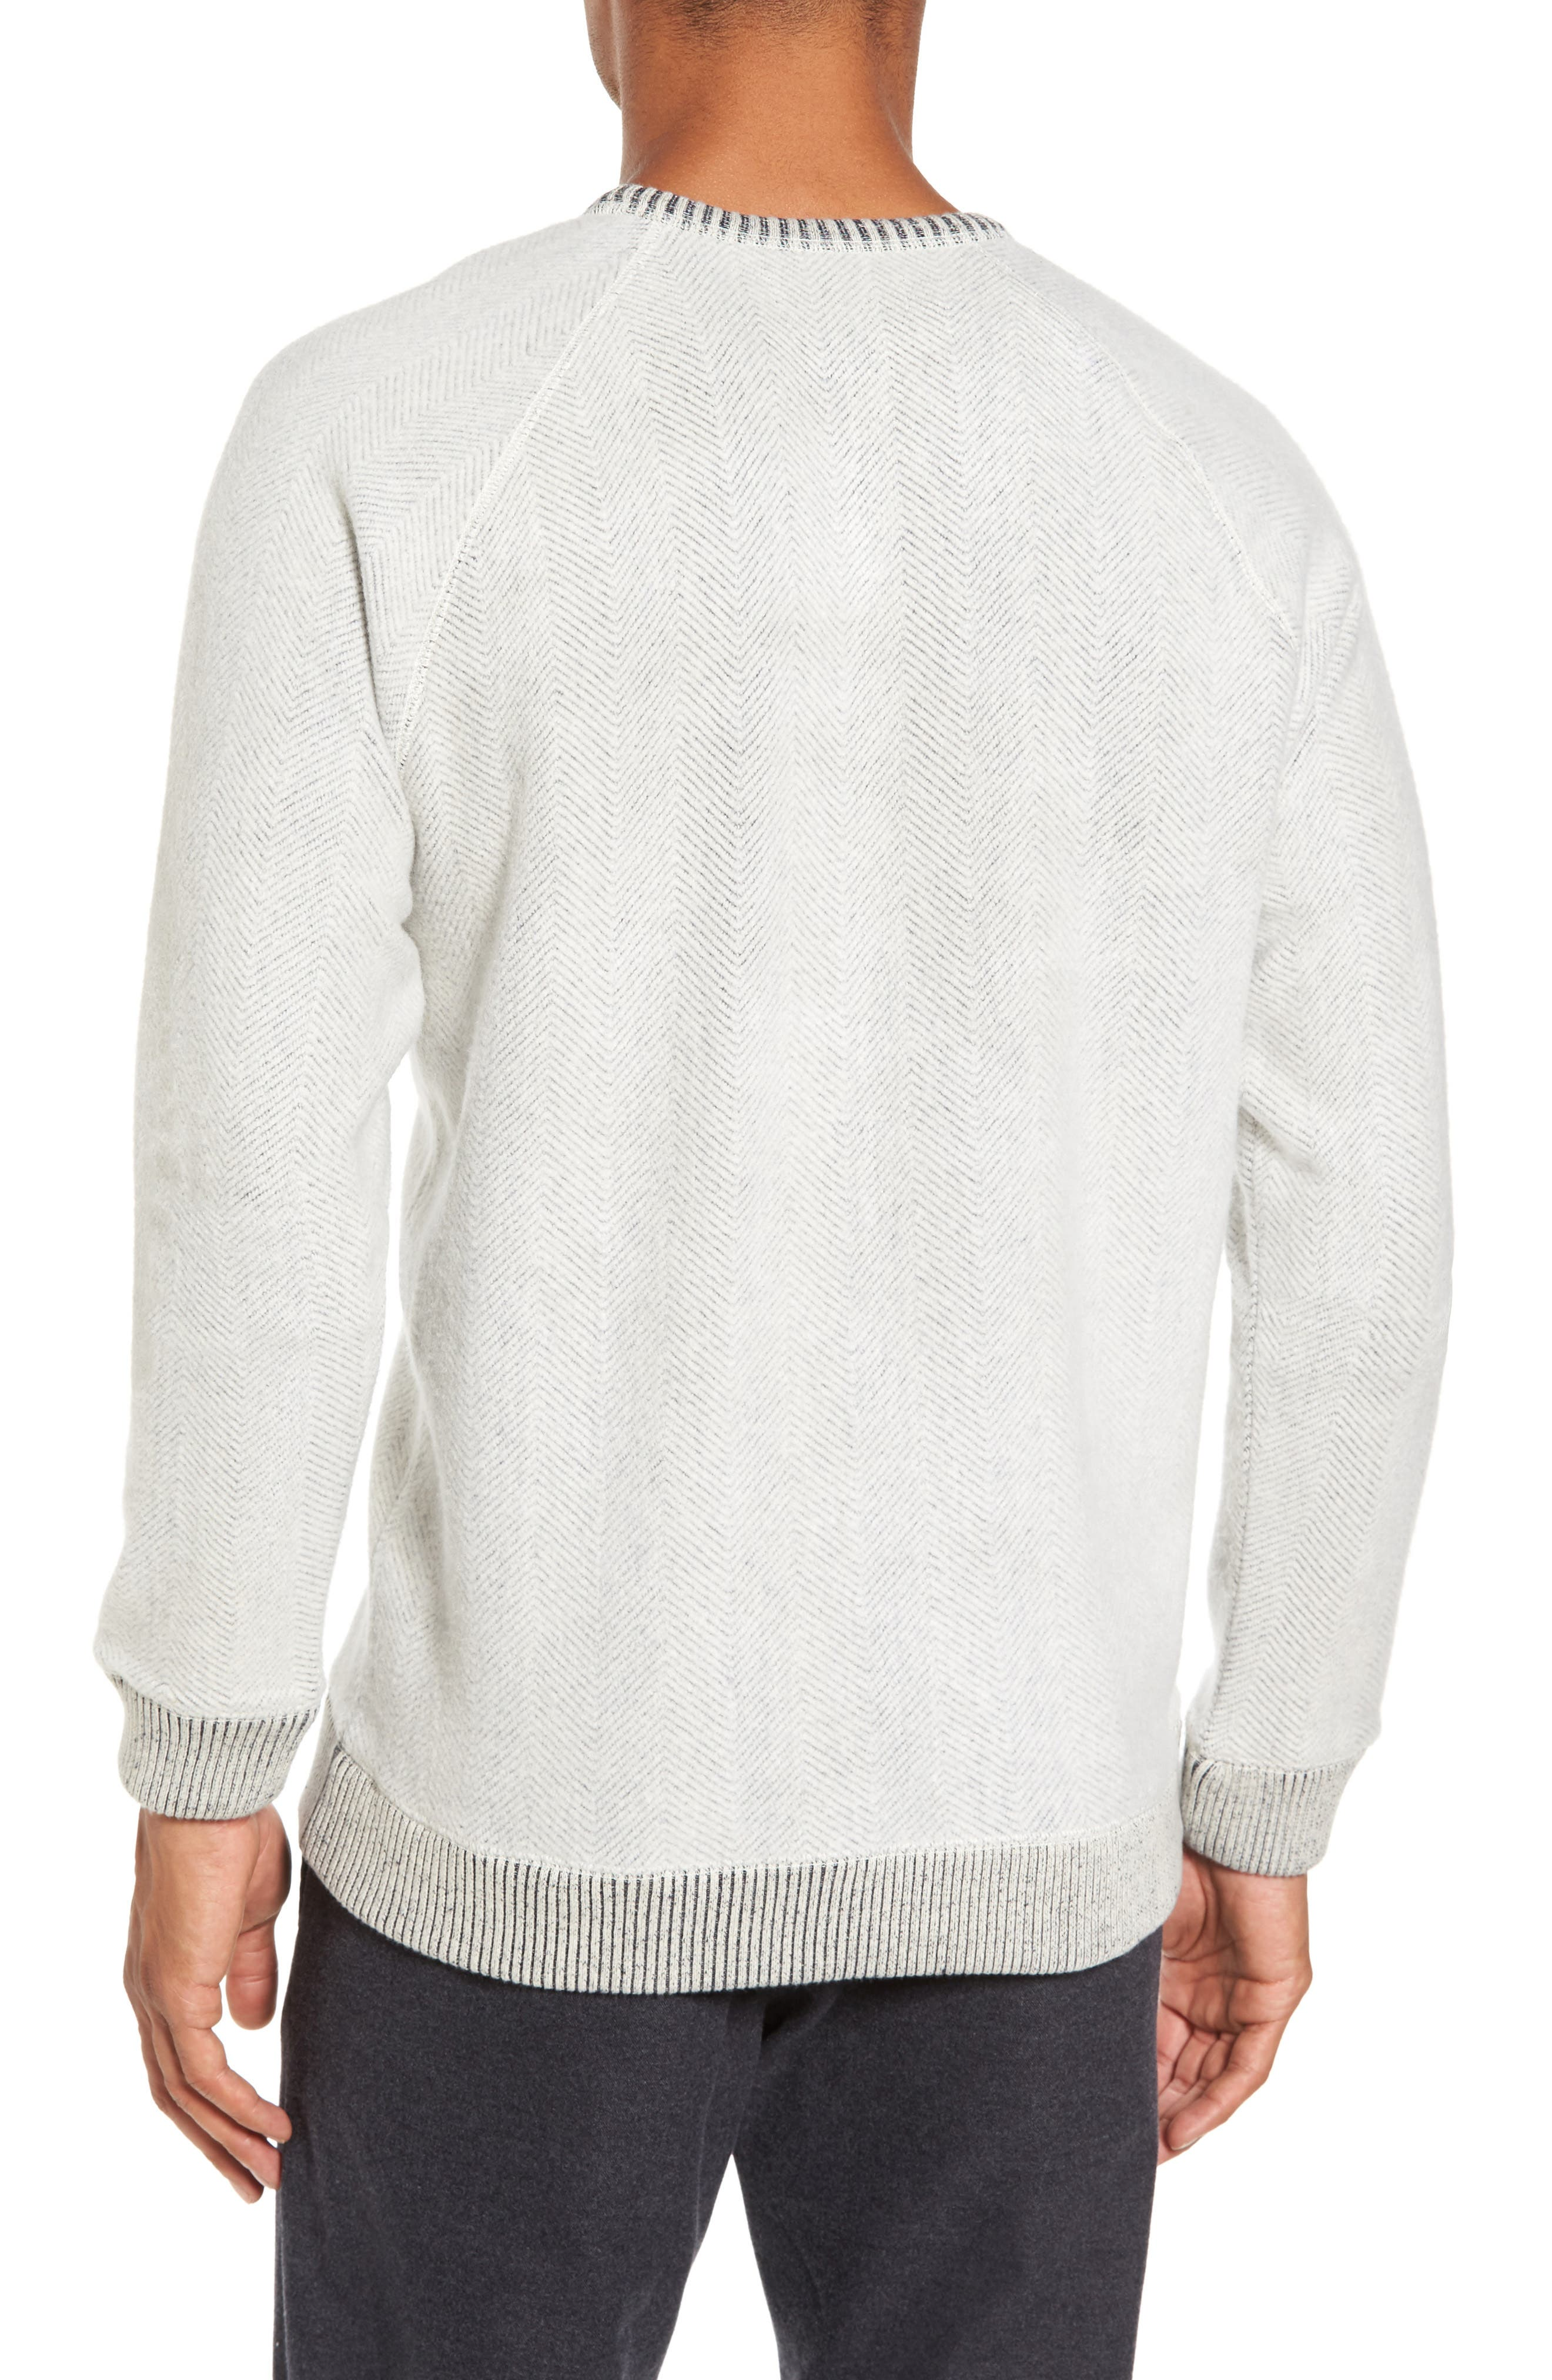 Alternate Image 2  - Nordstrom Men's Shop Brushed Fleece Sweatshirt